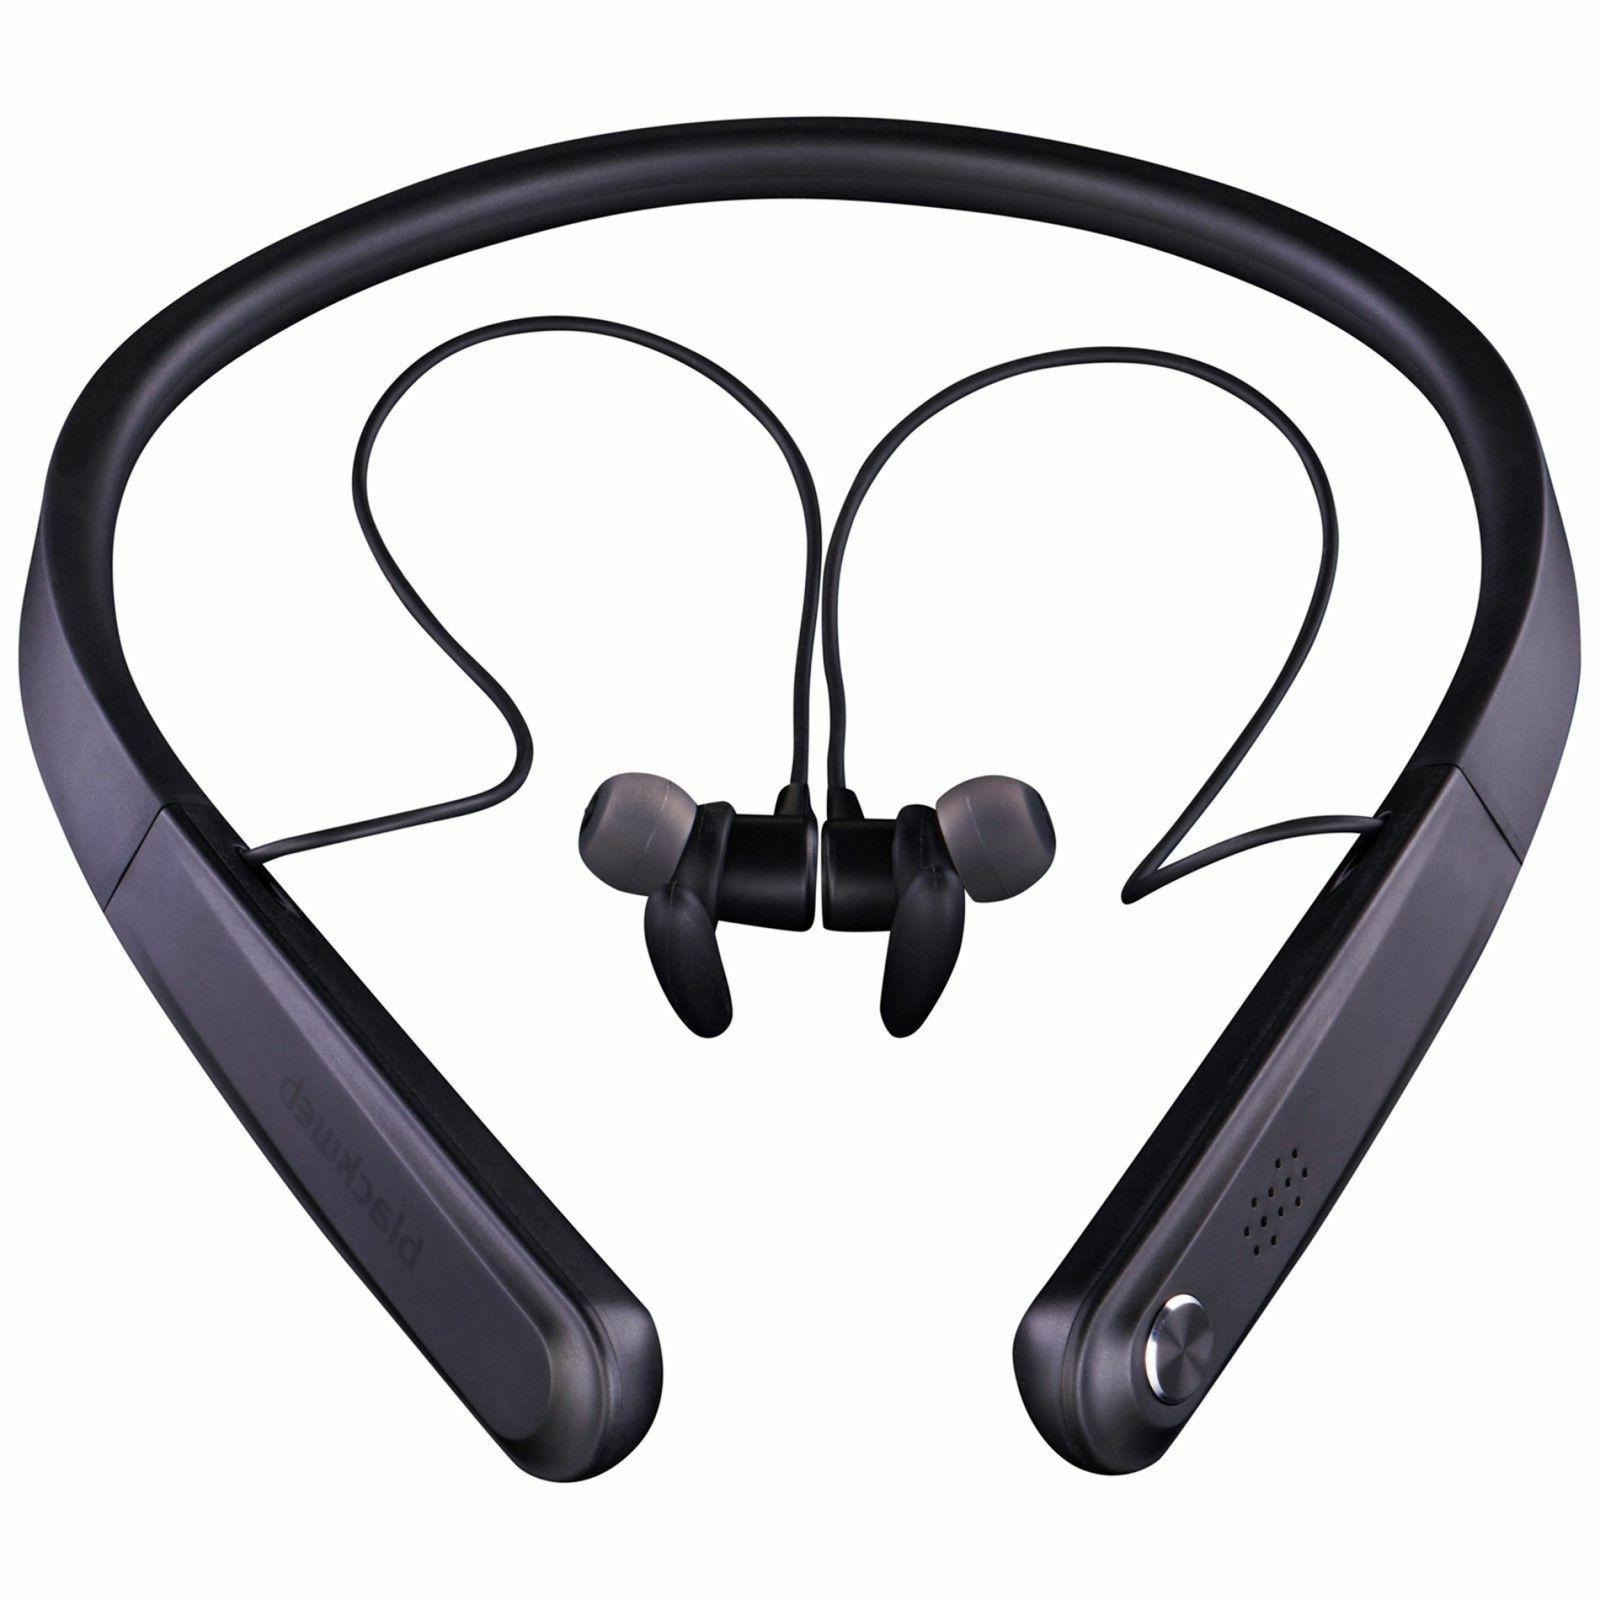 Blackweb 12 Hour Wireless Bluetooth Neckband Earbuds Headphones